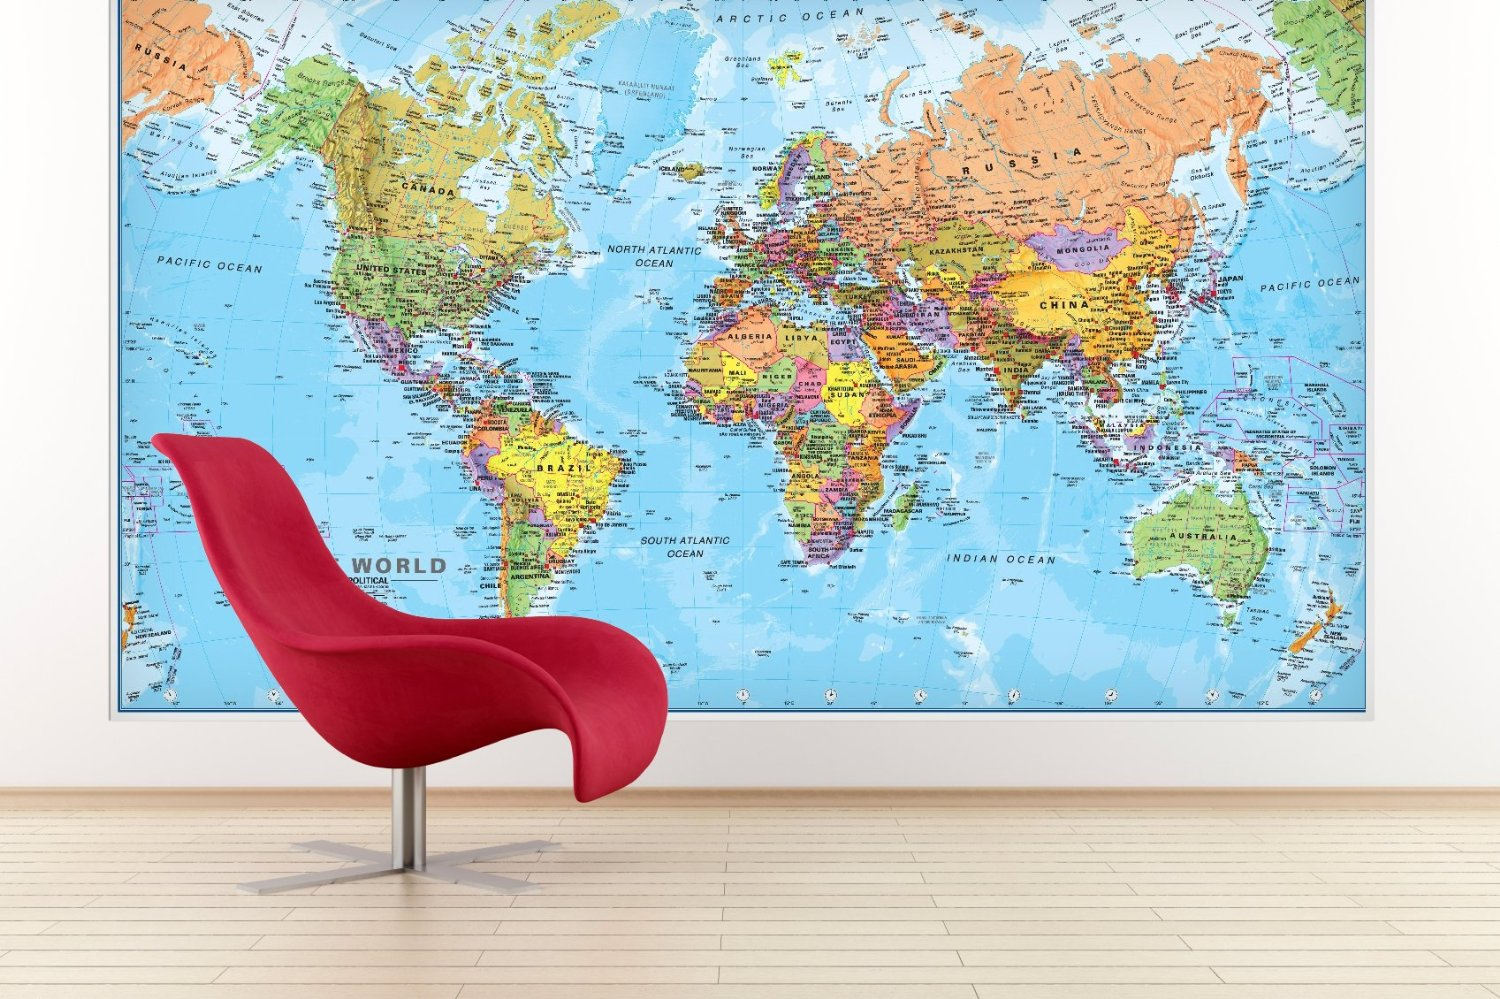 World map wall art at home and interior design ideas cute giant world megamap large wall map paper with front sheet lamination x inches hip homeschool gumiabroncs Choice Image